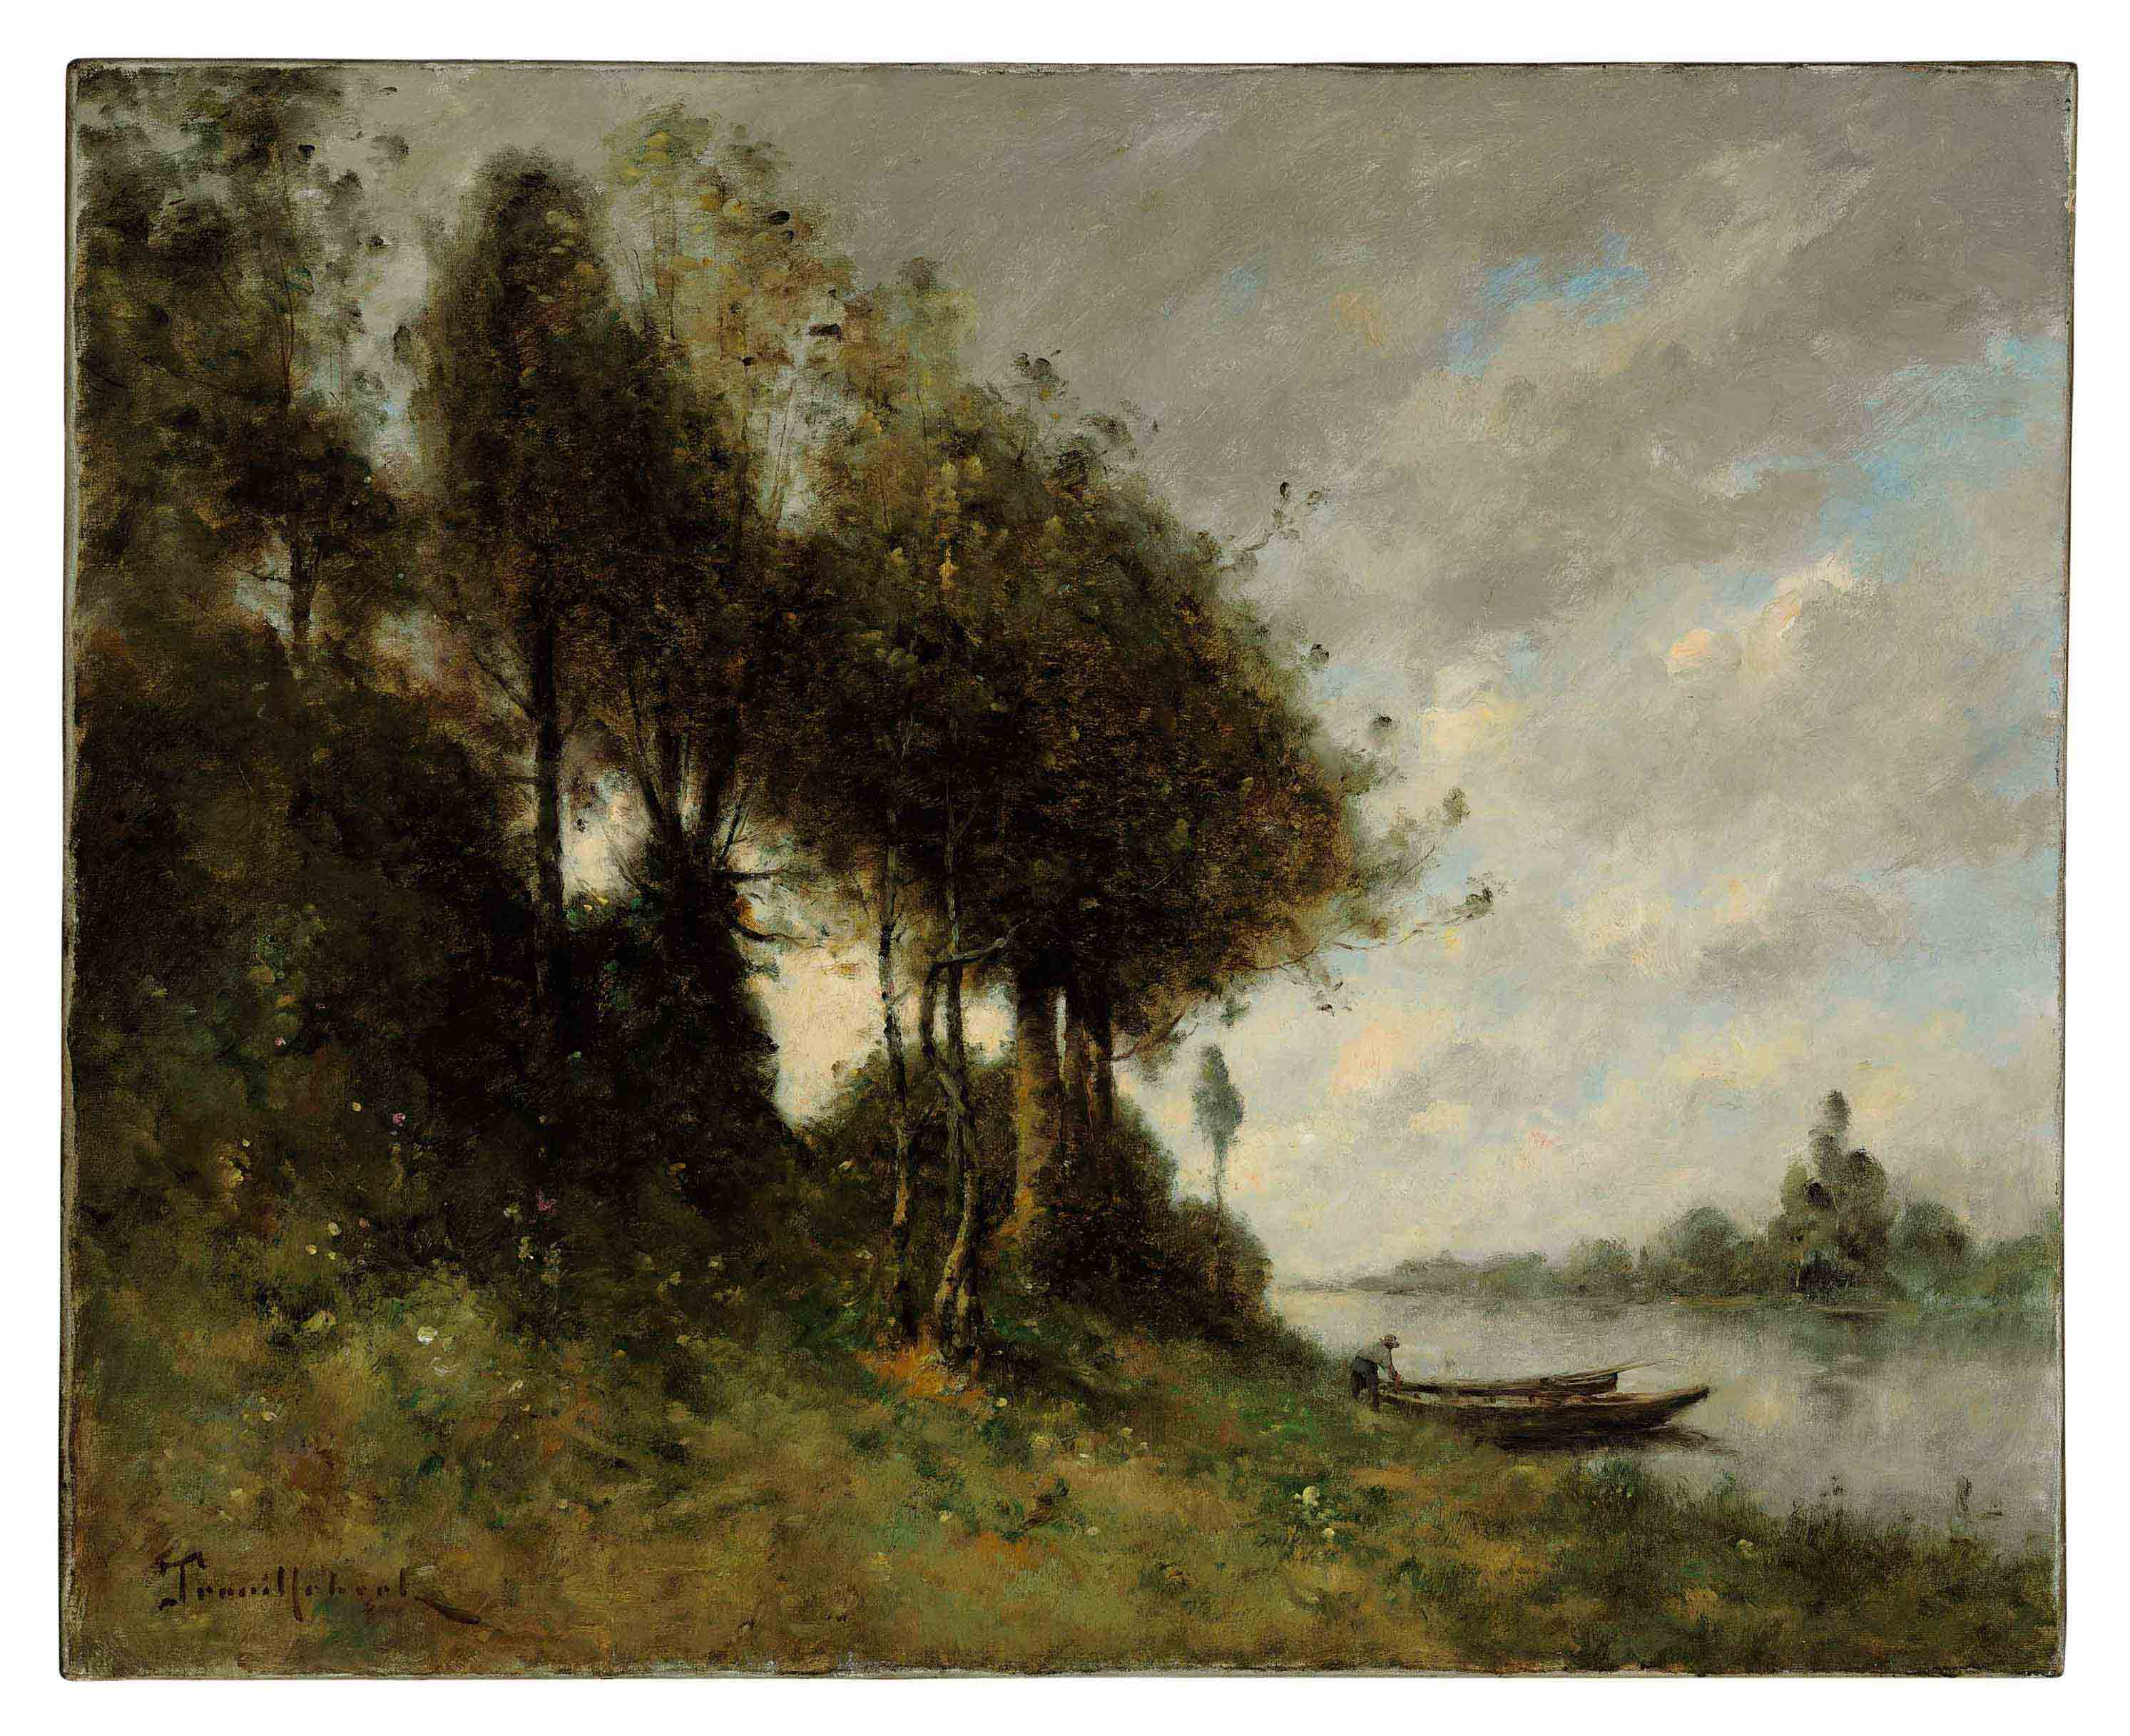 Les bords de la Loire